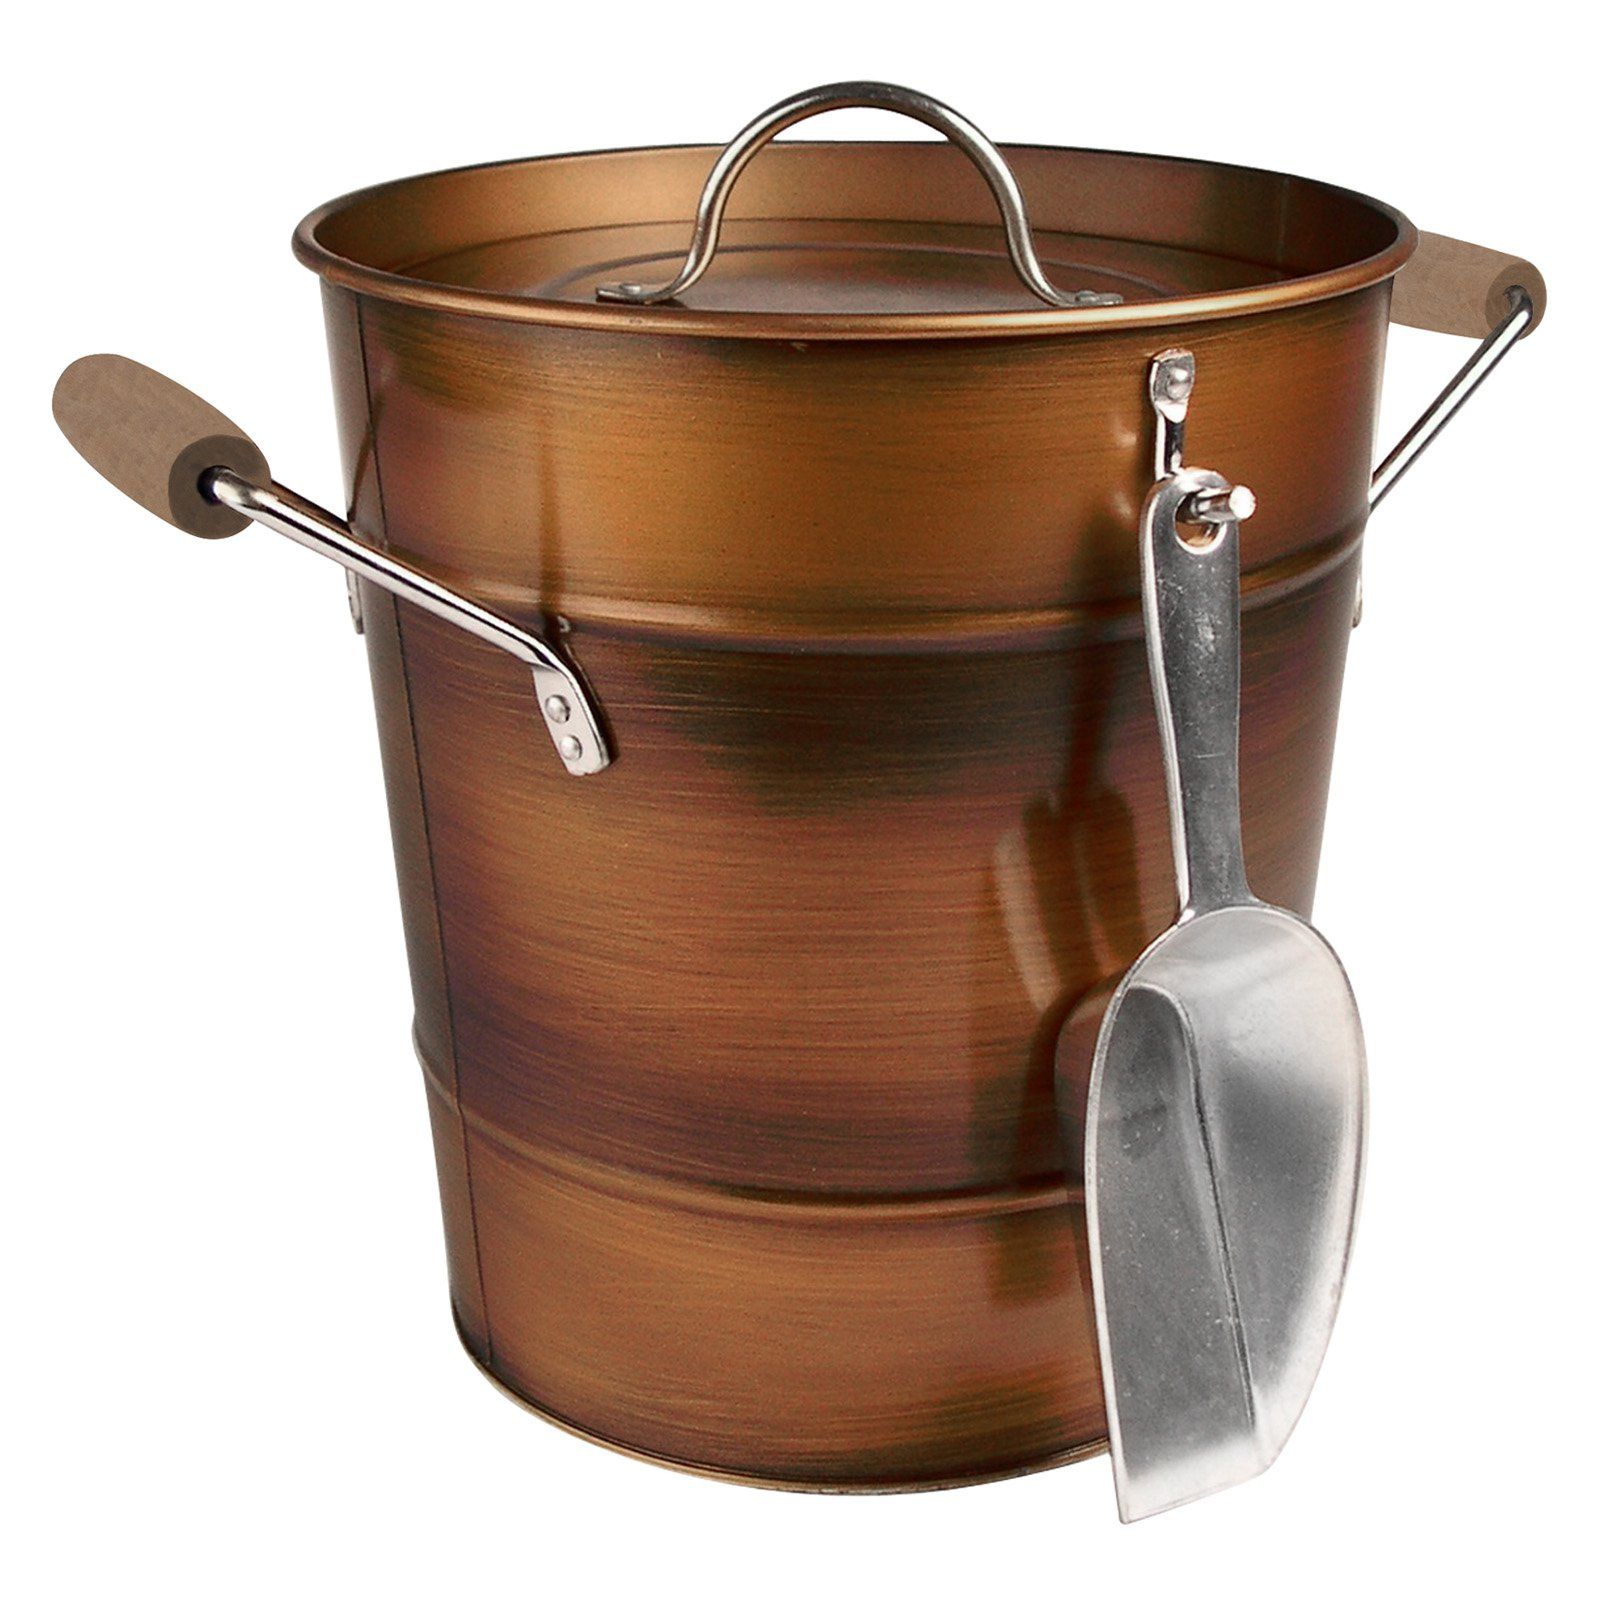 Artland Inc. Oasis Copper Ice Bucket with Scoop by Artland